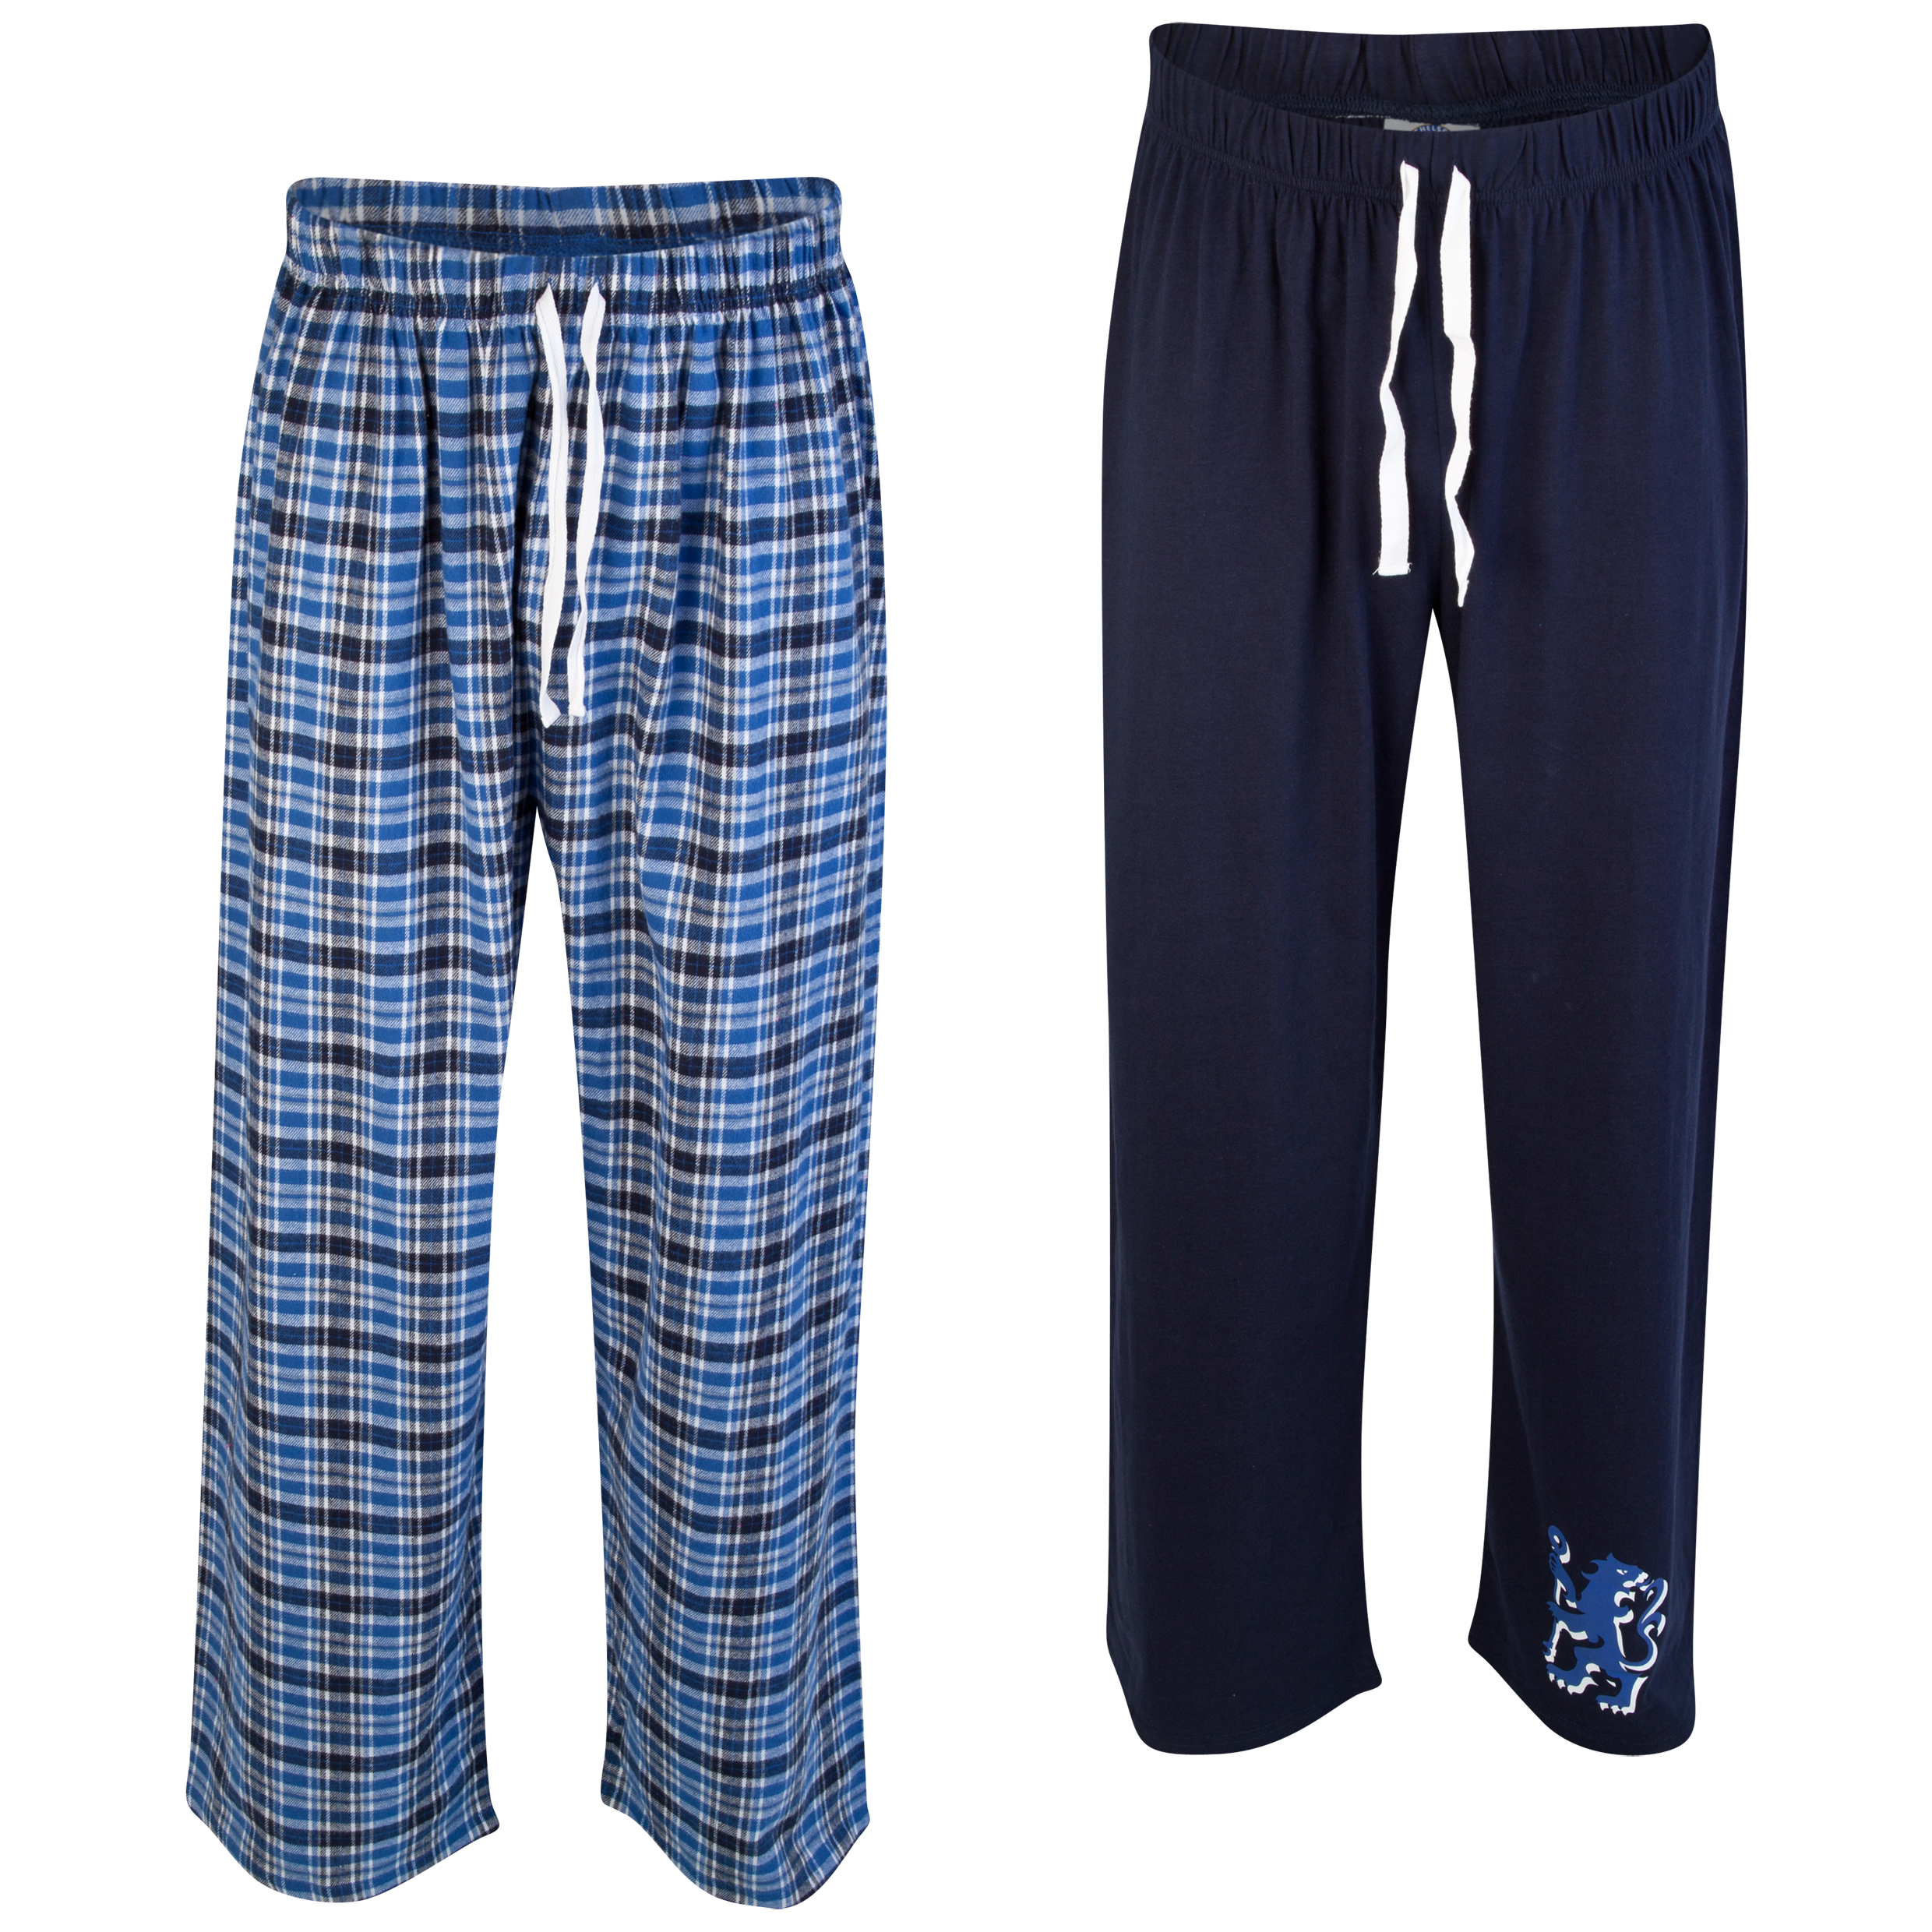 Chelsea 2 Pack Lounge Pants - Navy - Older Boys